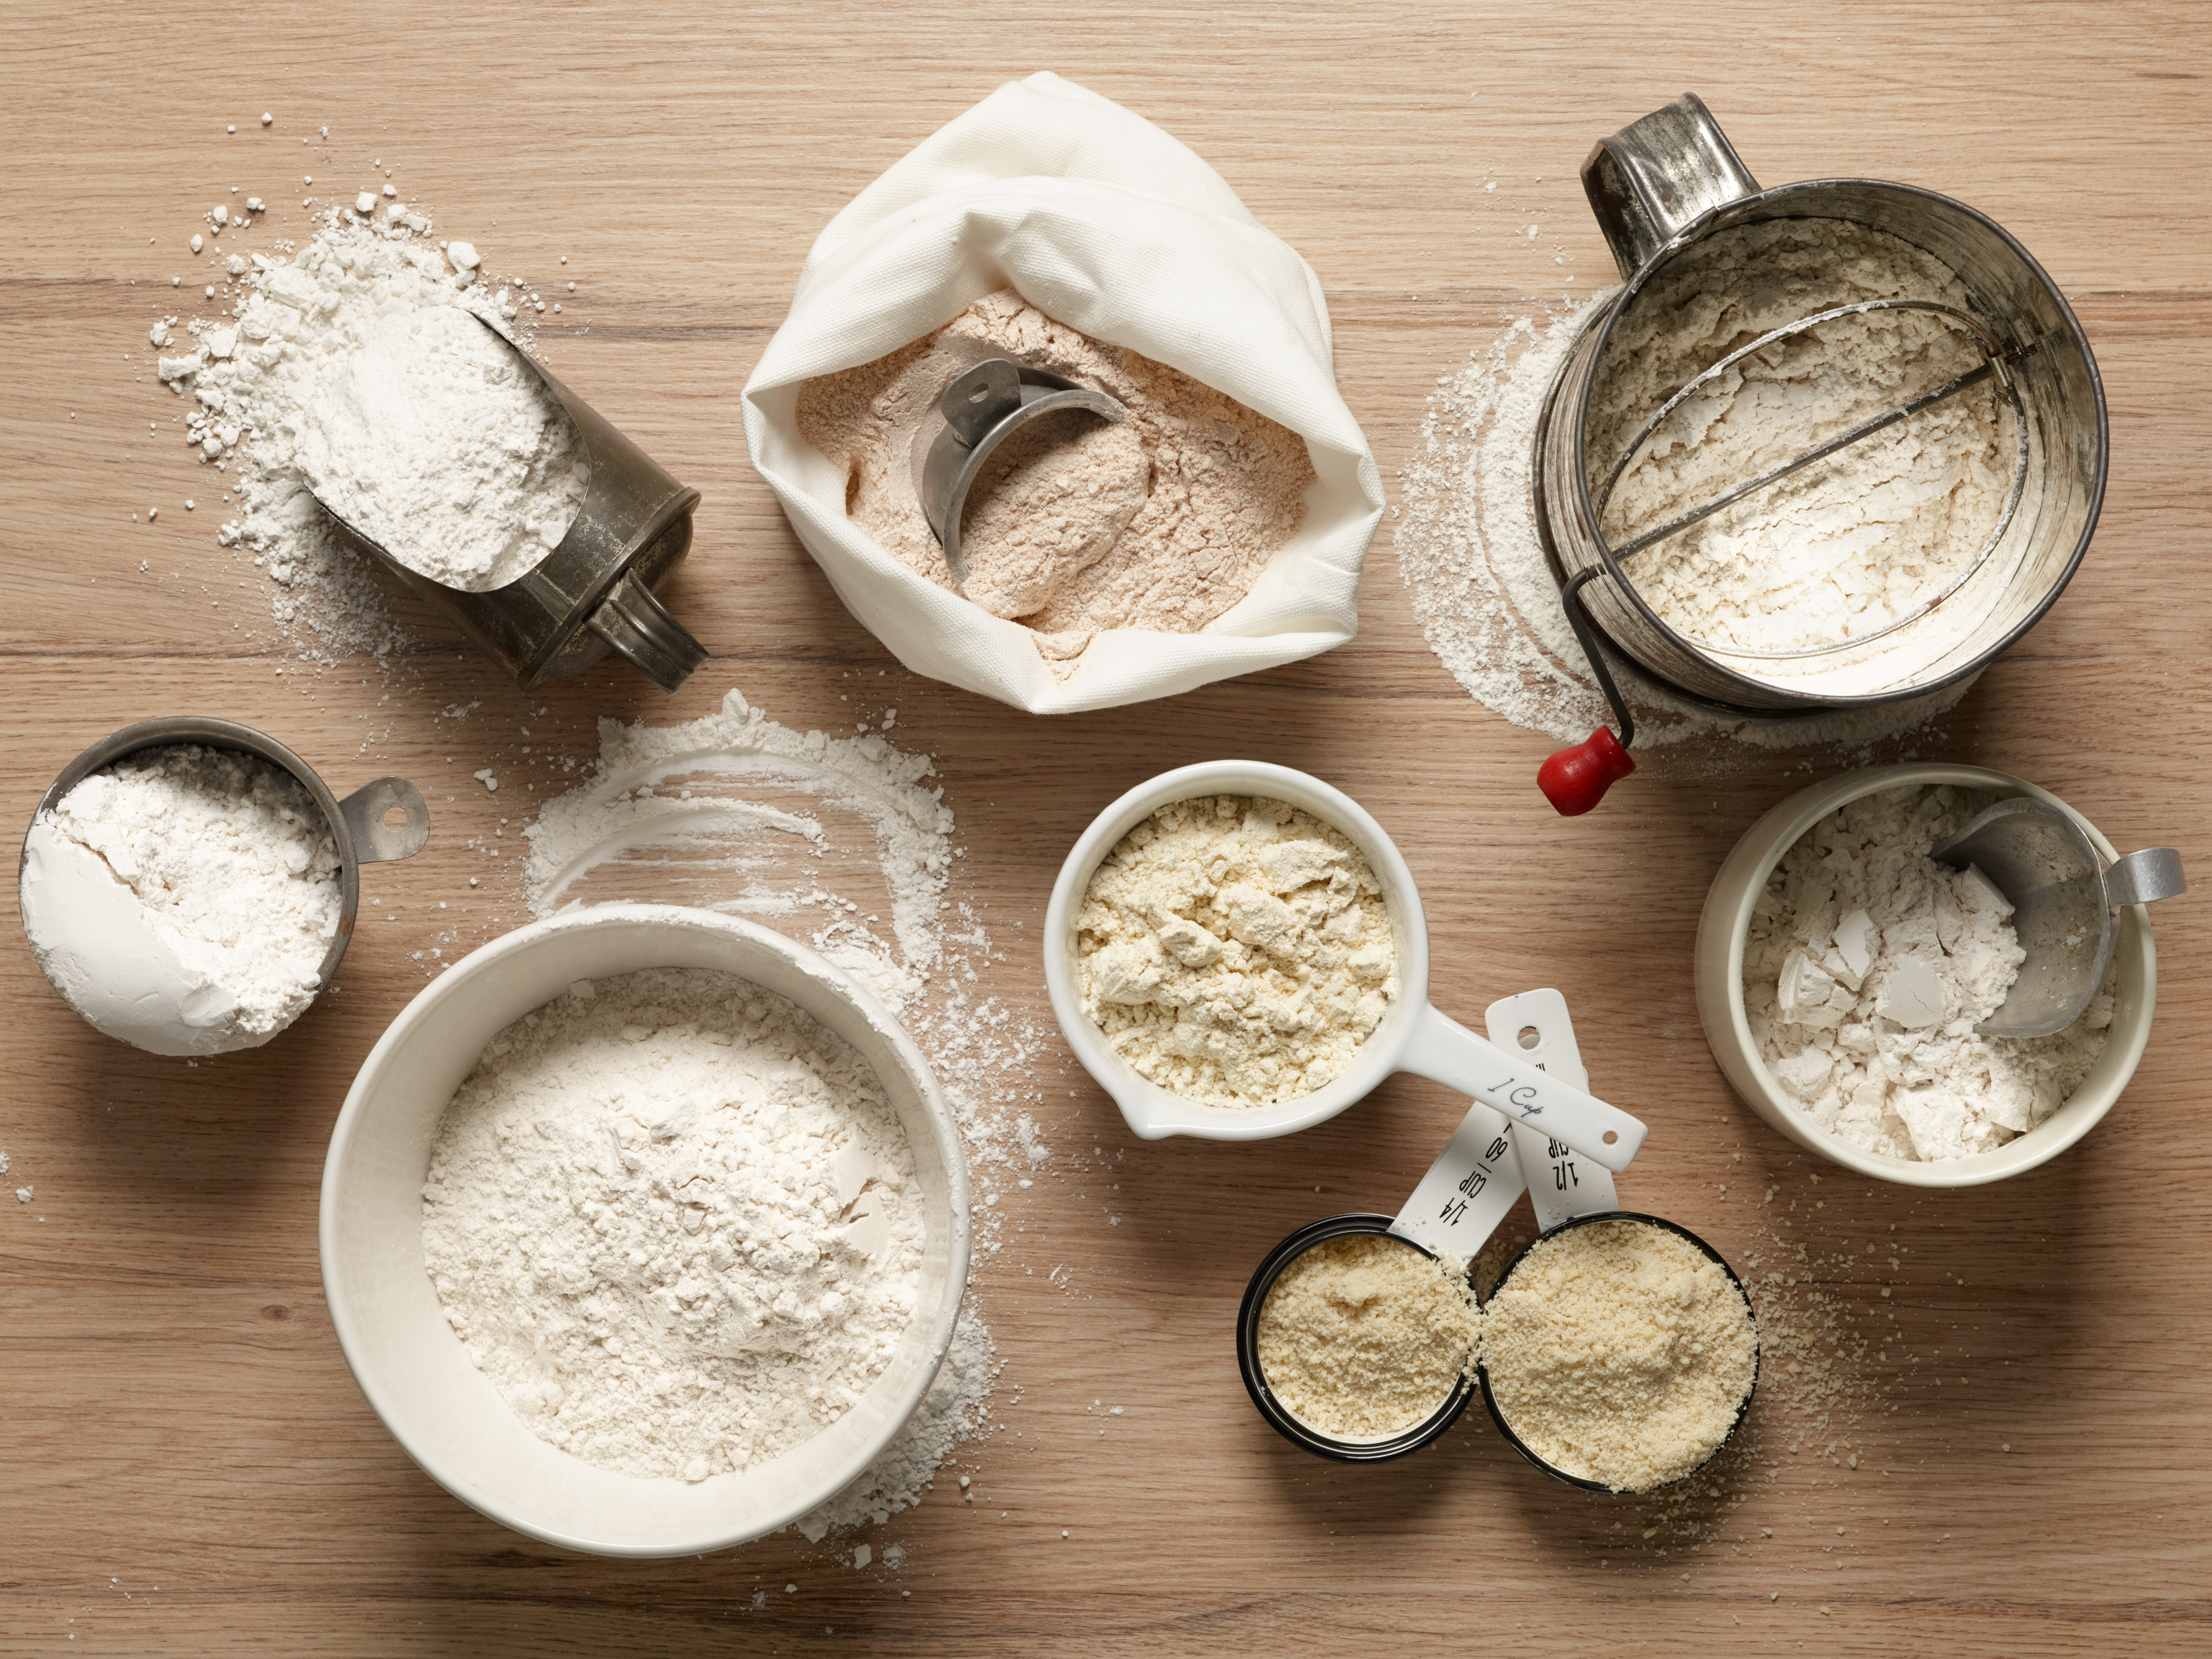 Food Network Kitchen's Baking Ingredient Guide to Flour for THANKSGIVING/BAKING/WEEKEND COOKING, as seen on Food Network.